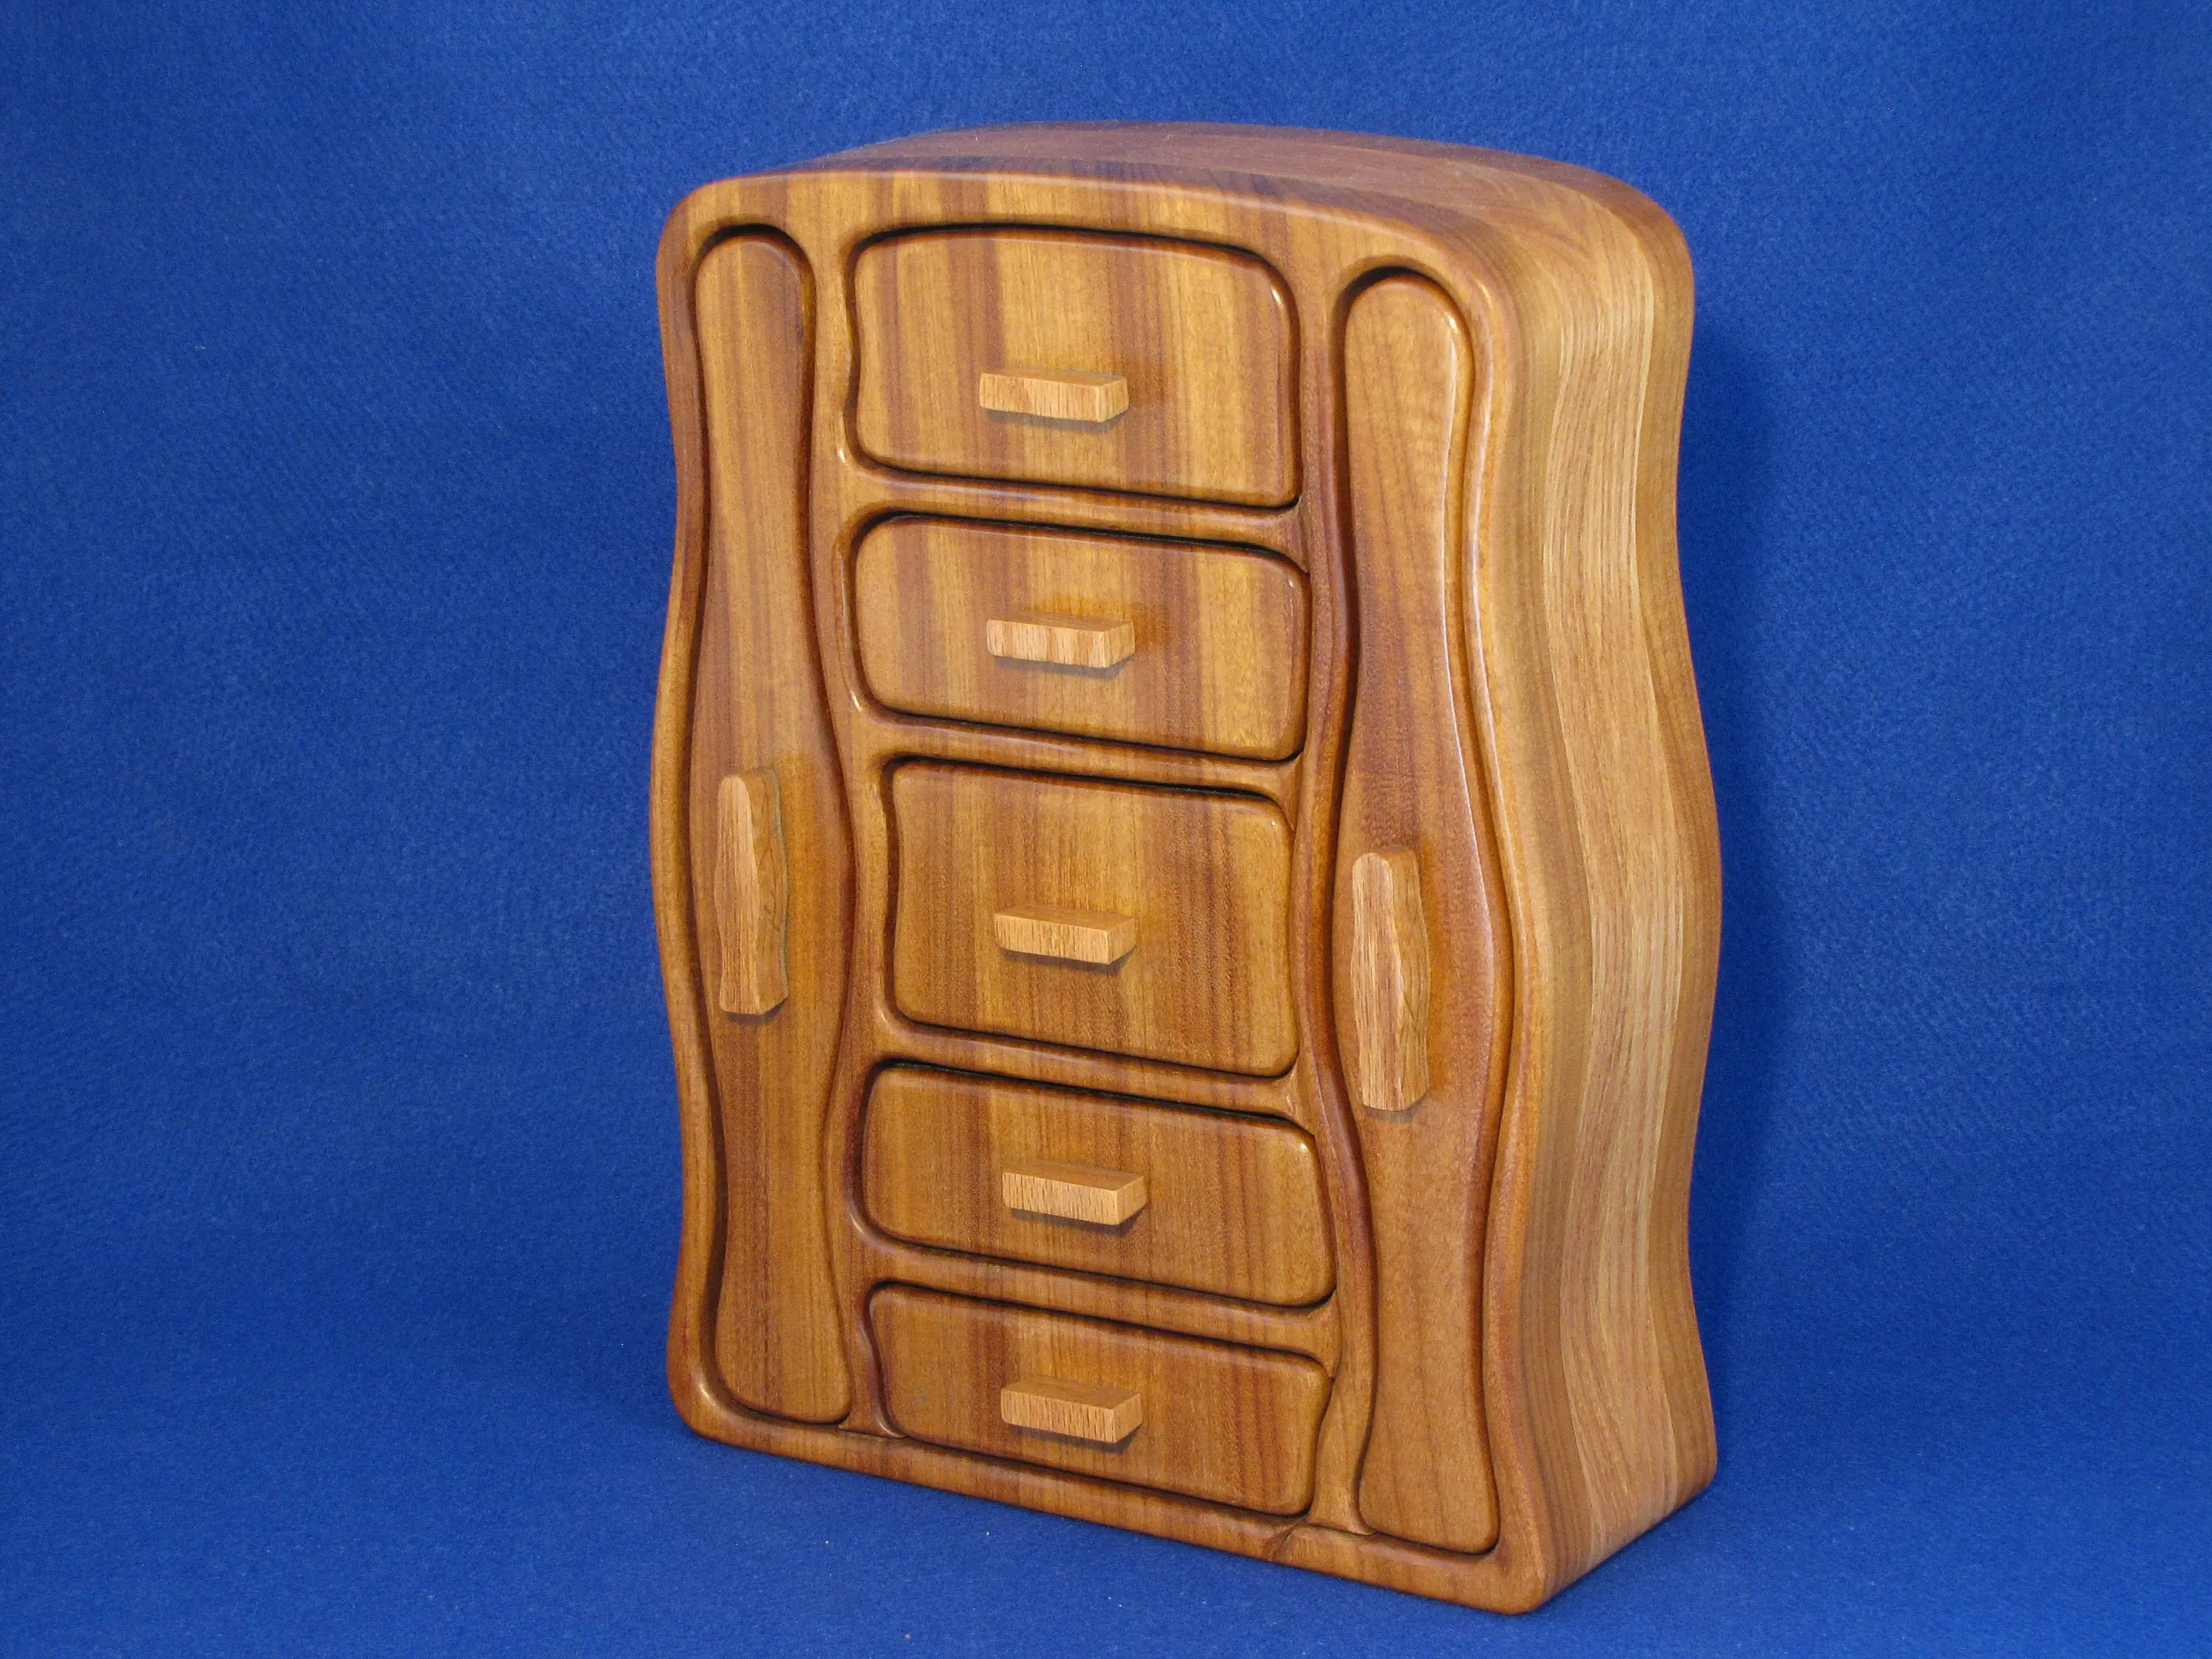 Bandsaw Jewelry Box Patterns Woodworking